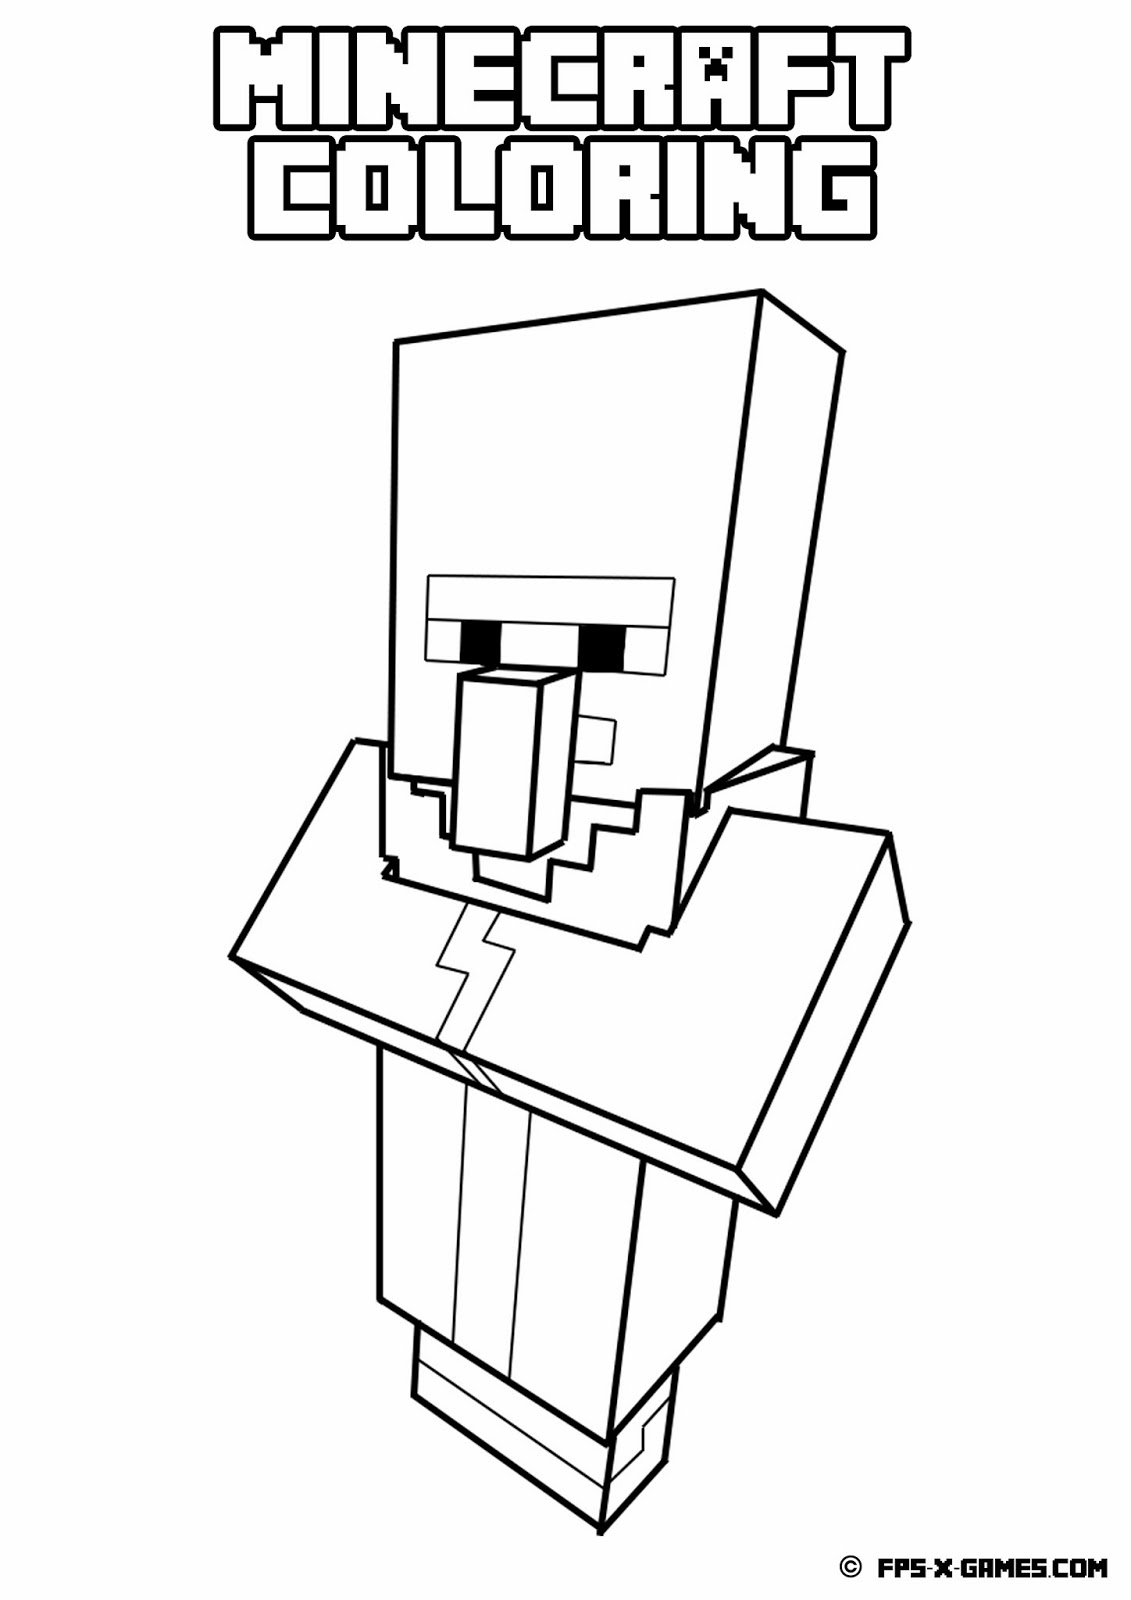 Printable minecraft coloring villager for Minecraft mutant creeper coloring pages